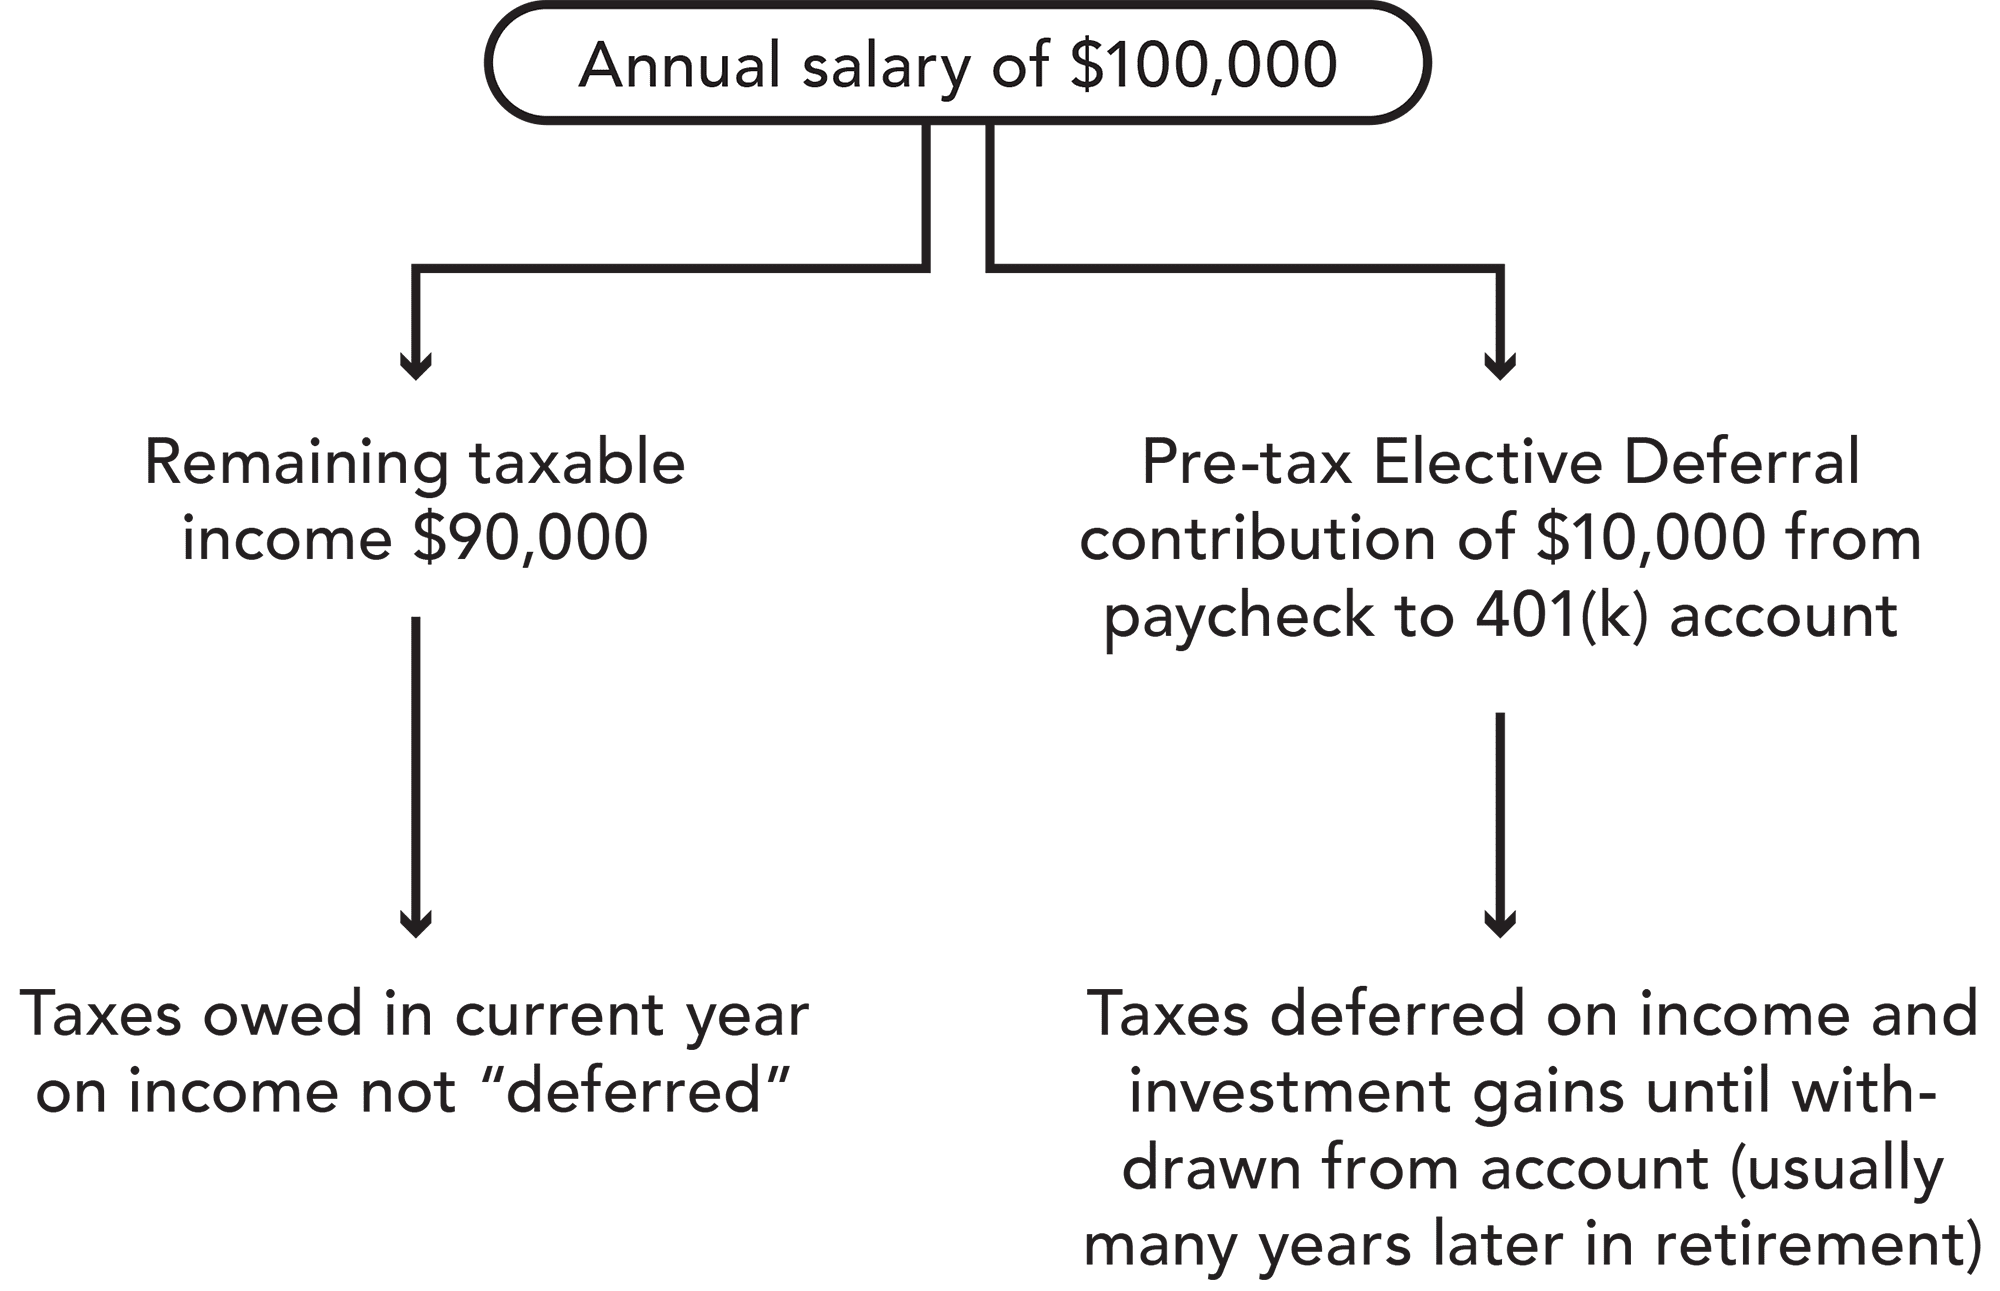 Elective deferrals are contributions made to a retirement account directly from an employee's salary.